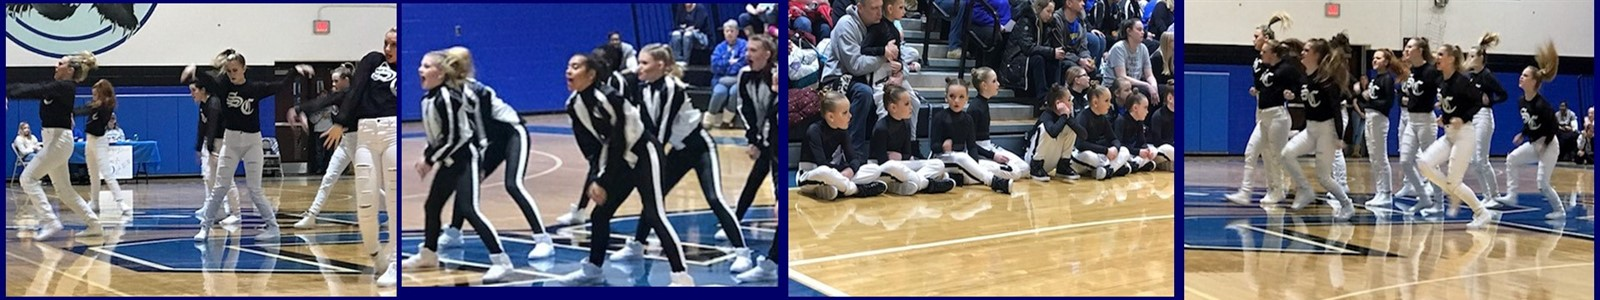 Spencer Co. at Dance Team Regionals  #SpencerCountyPride